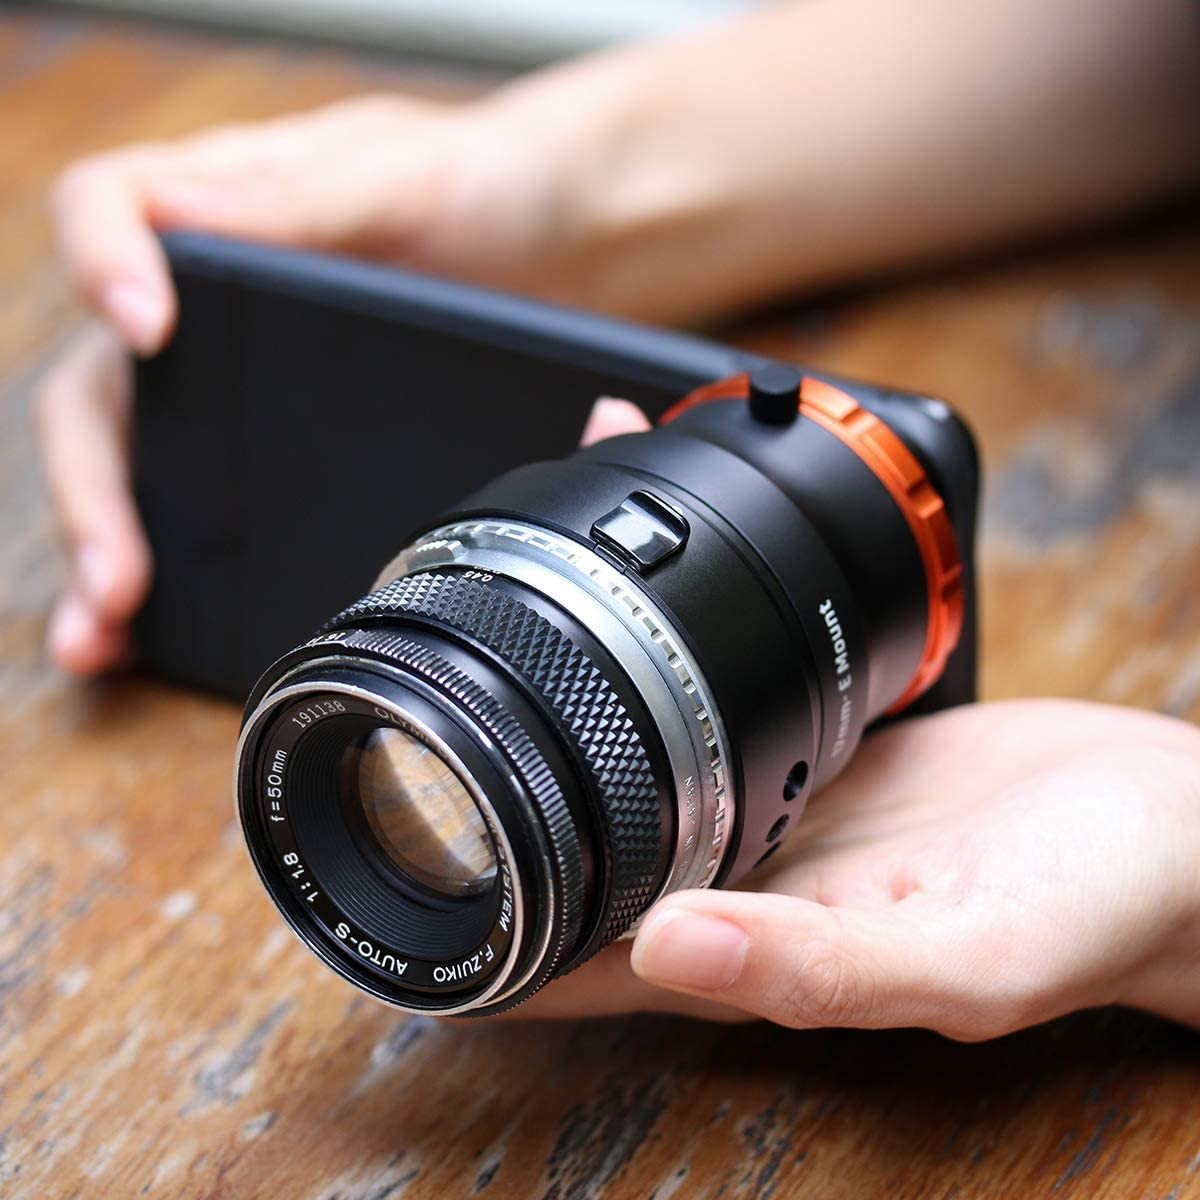 ULANZI DOF Adapter with Sony E Mount for iPhone Samsung Google etc Fits Full Frame Manual Lens Turn Your Smartphone into a Real Camera